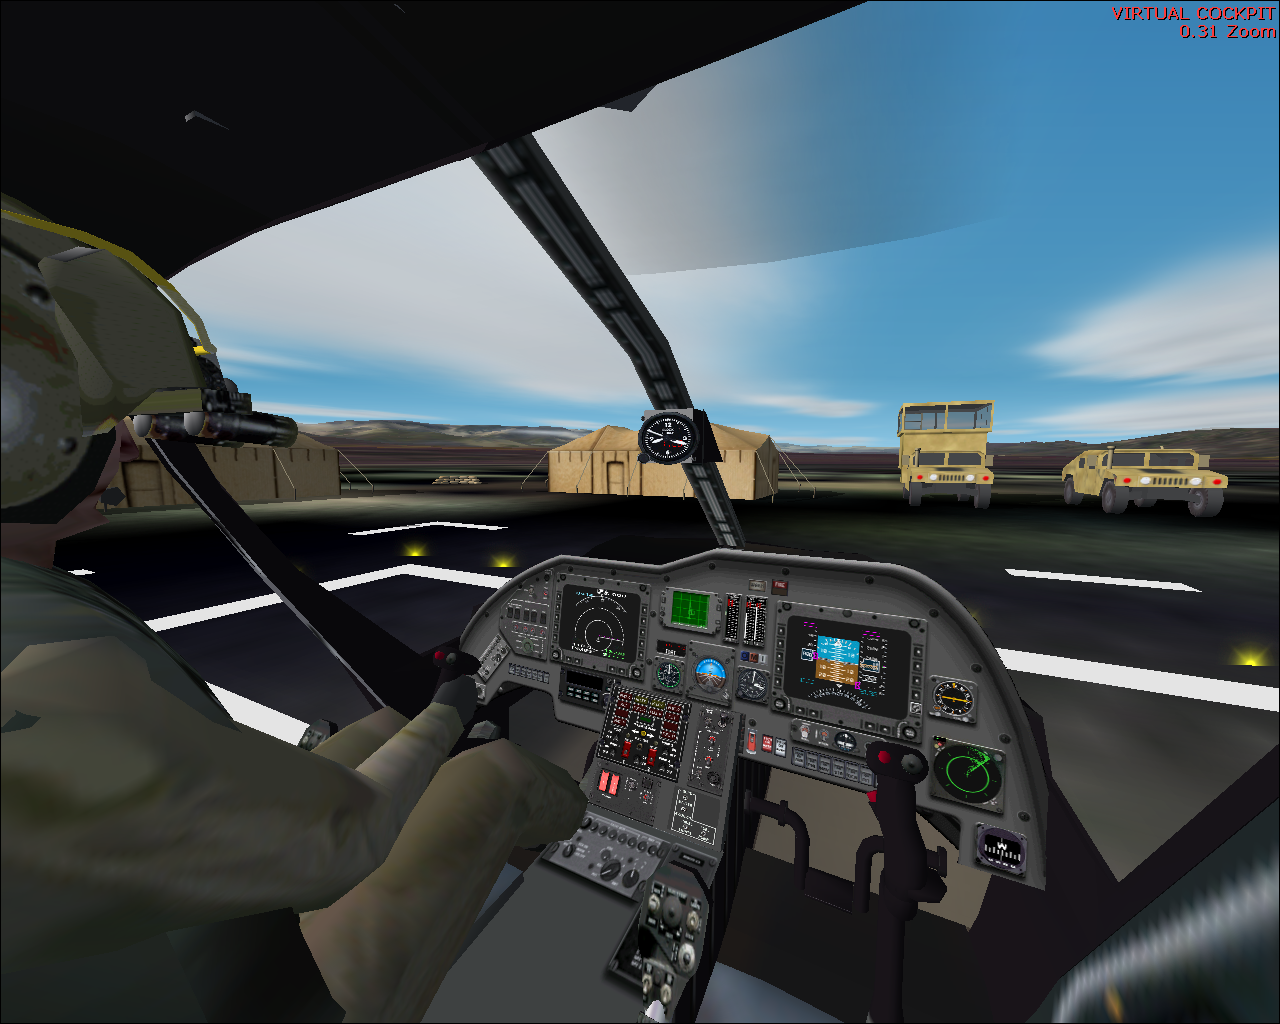 Military Helicopters Screenshots for Windows - MobyGames